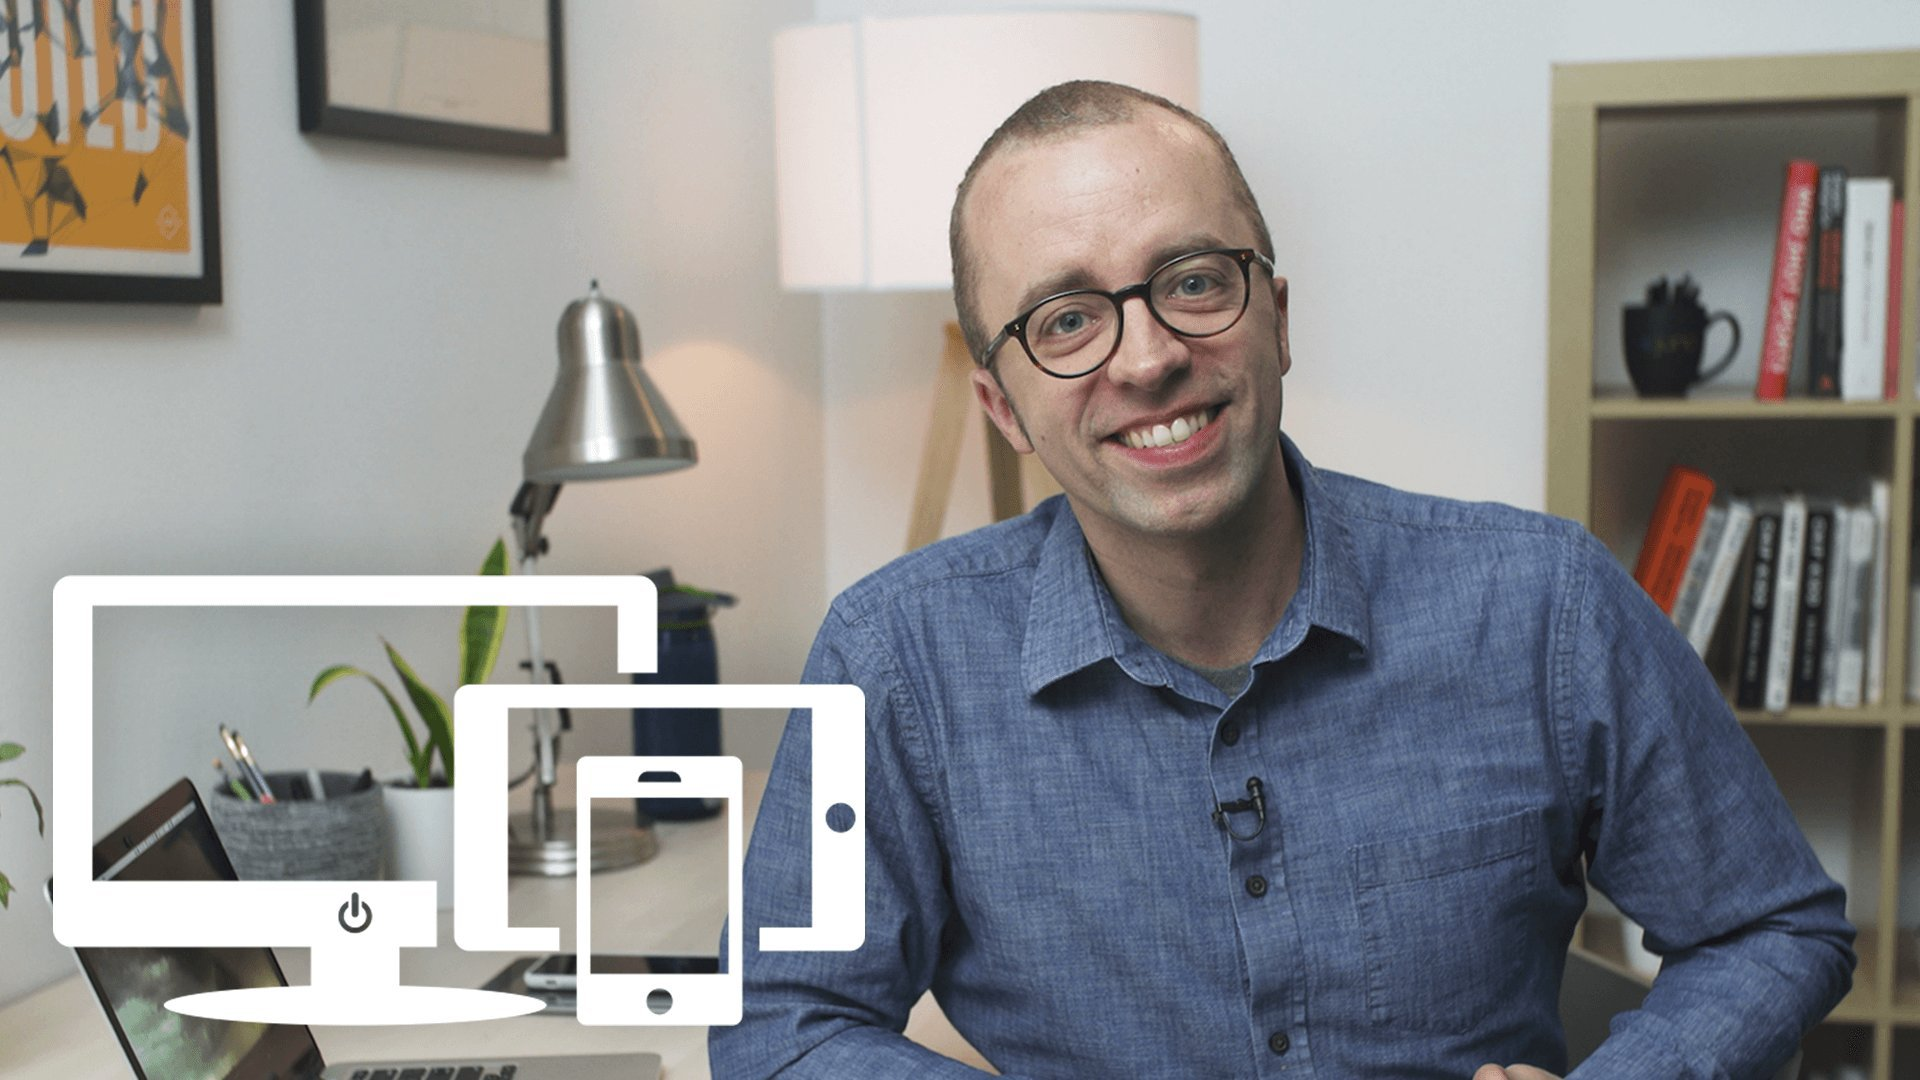 Introduction to Responsive Web Design | Ethan Marcotte